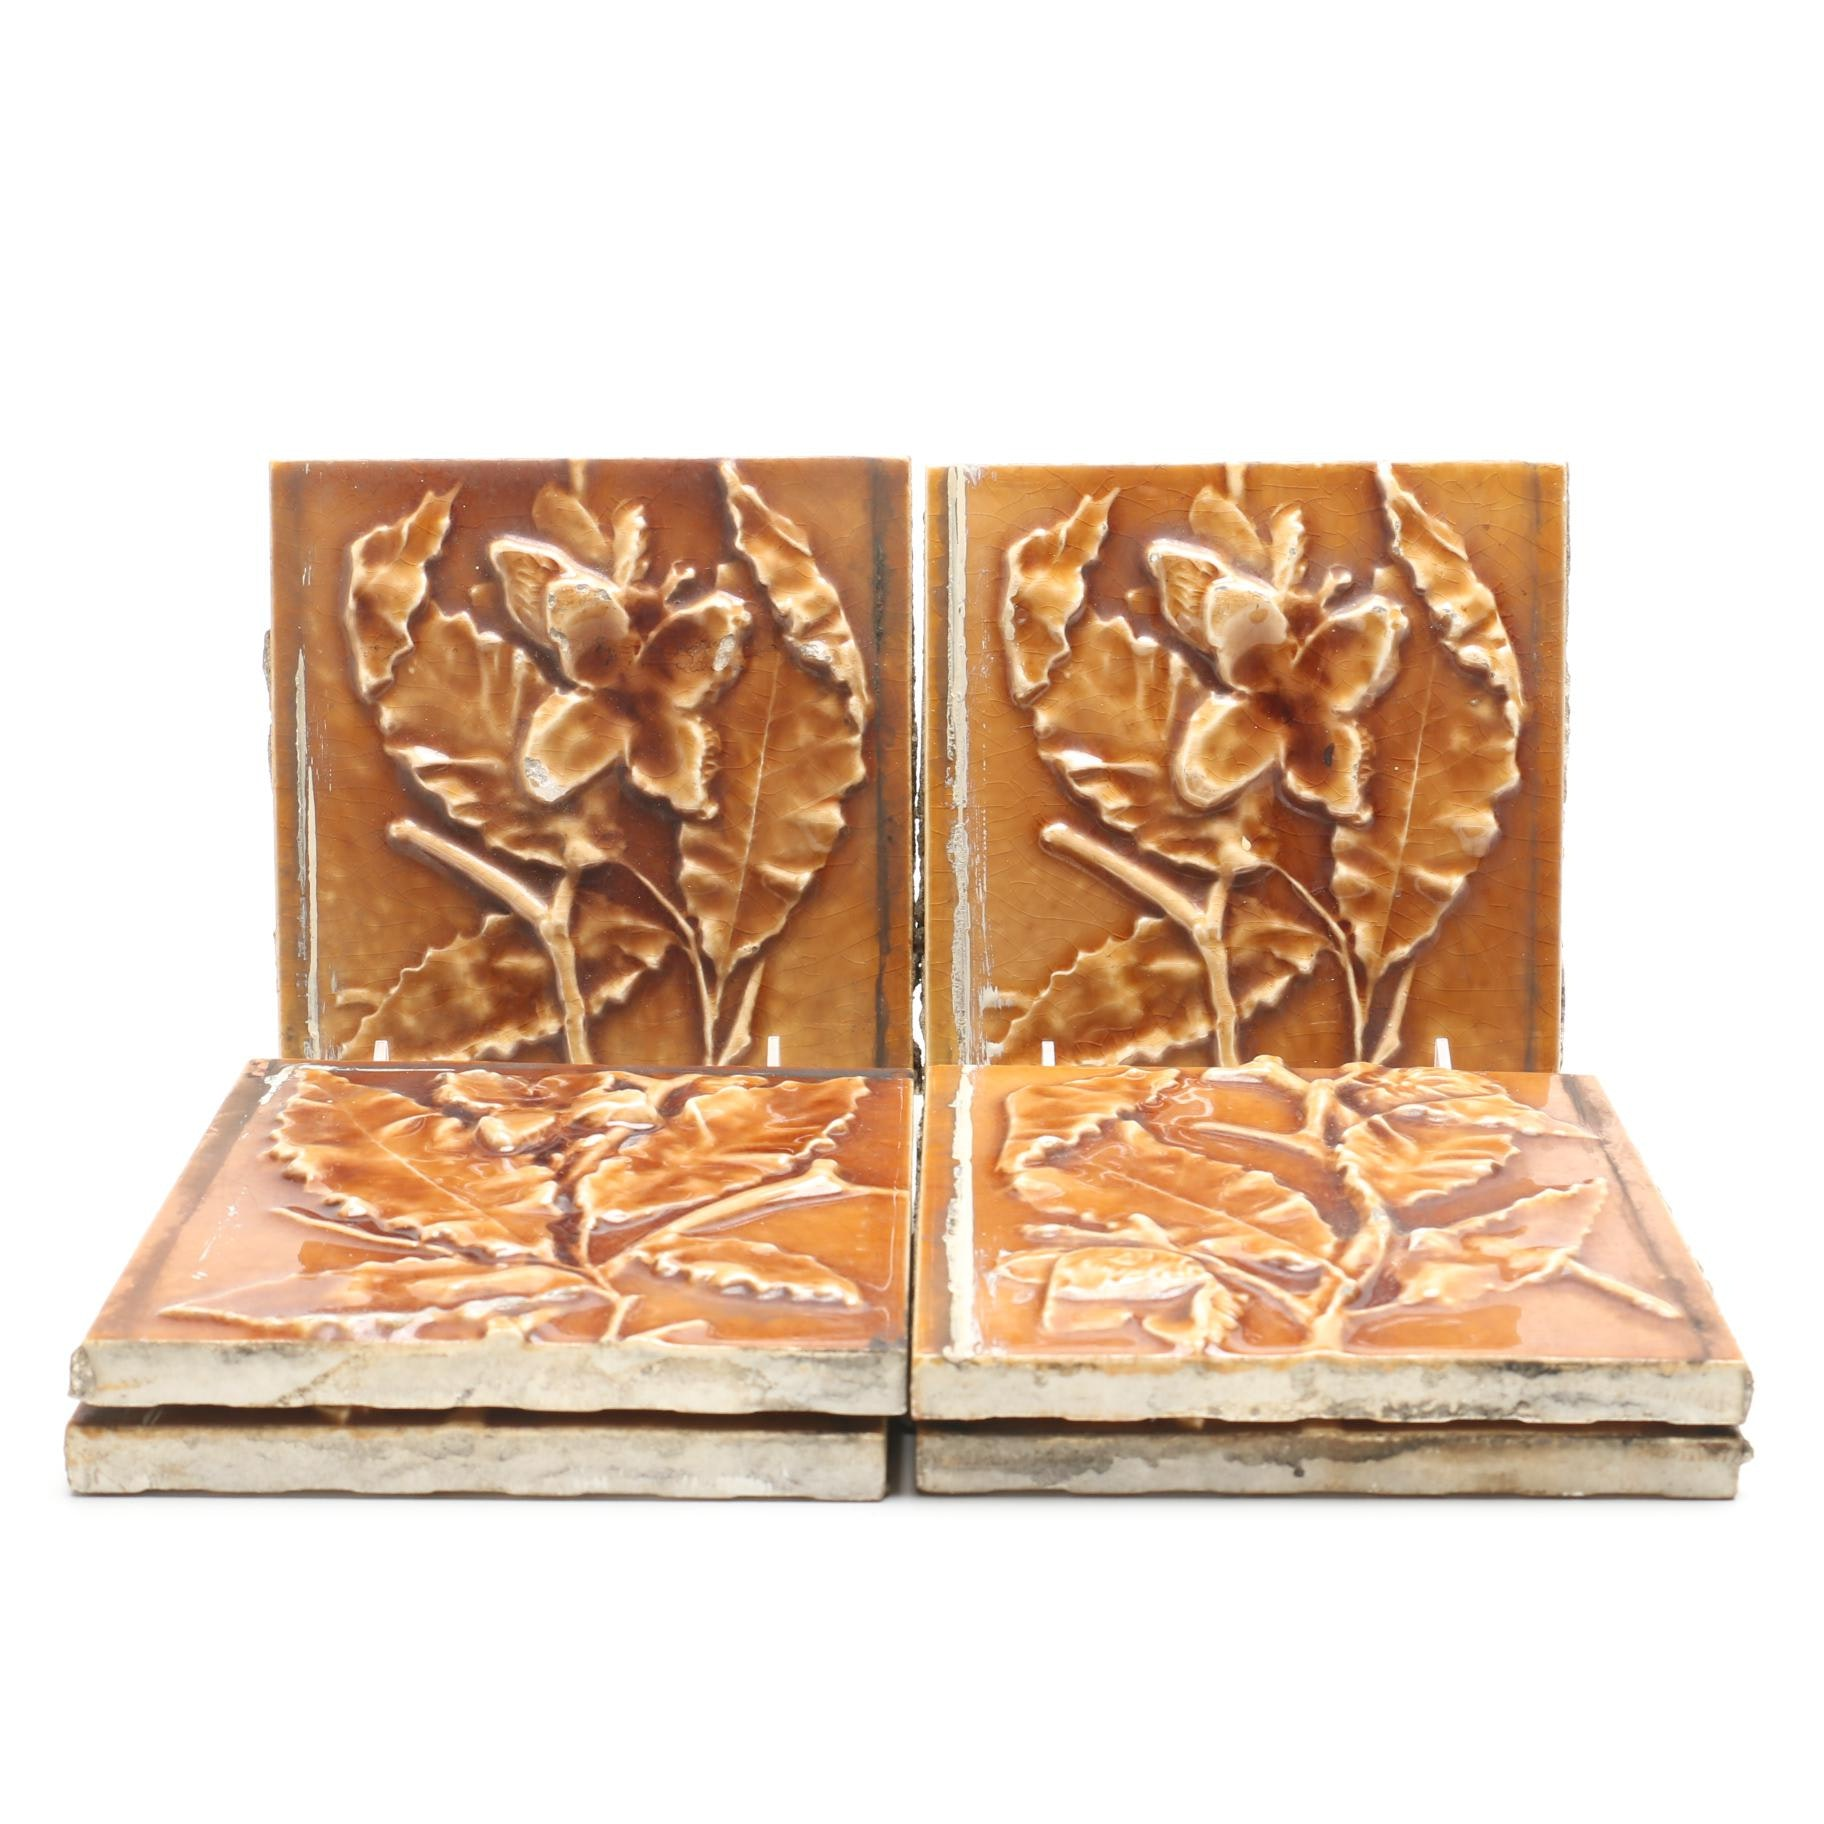 Vintage Art Pottery Tiles from Trent Tile Company